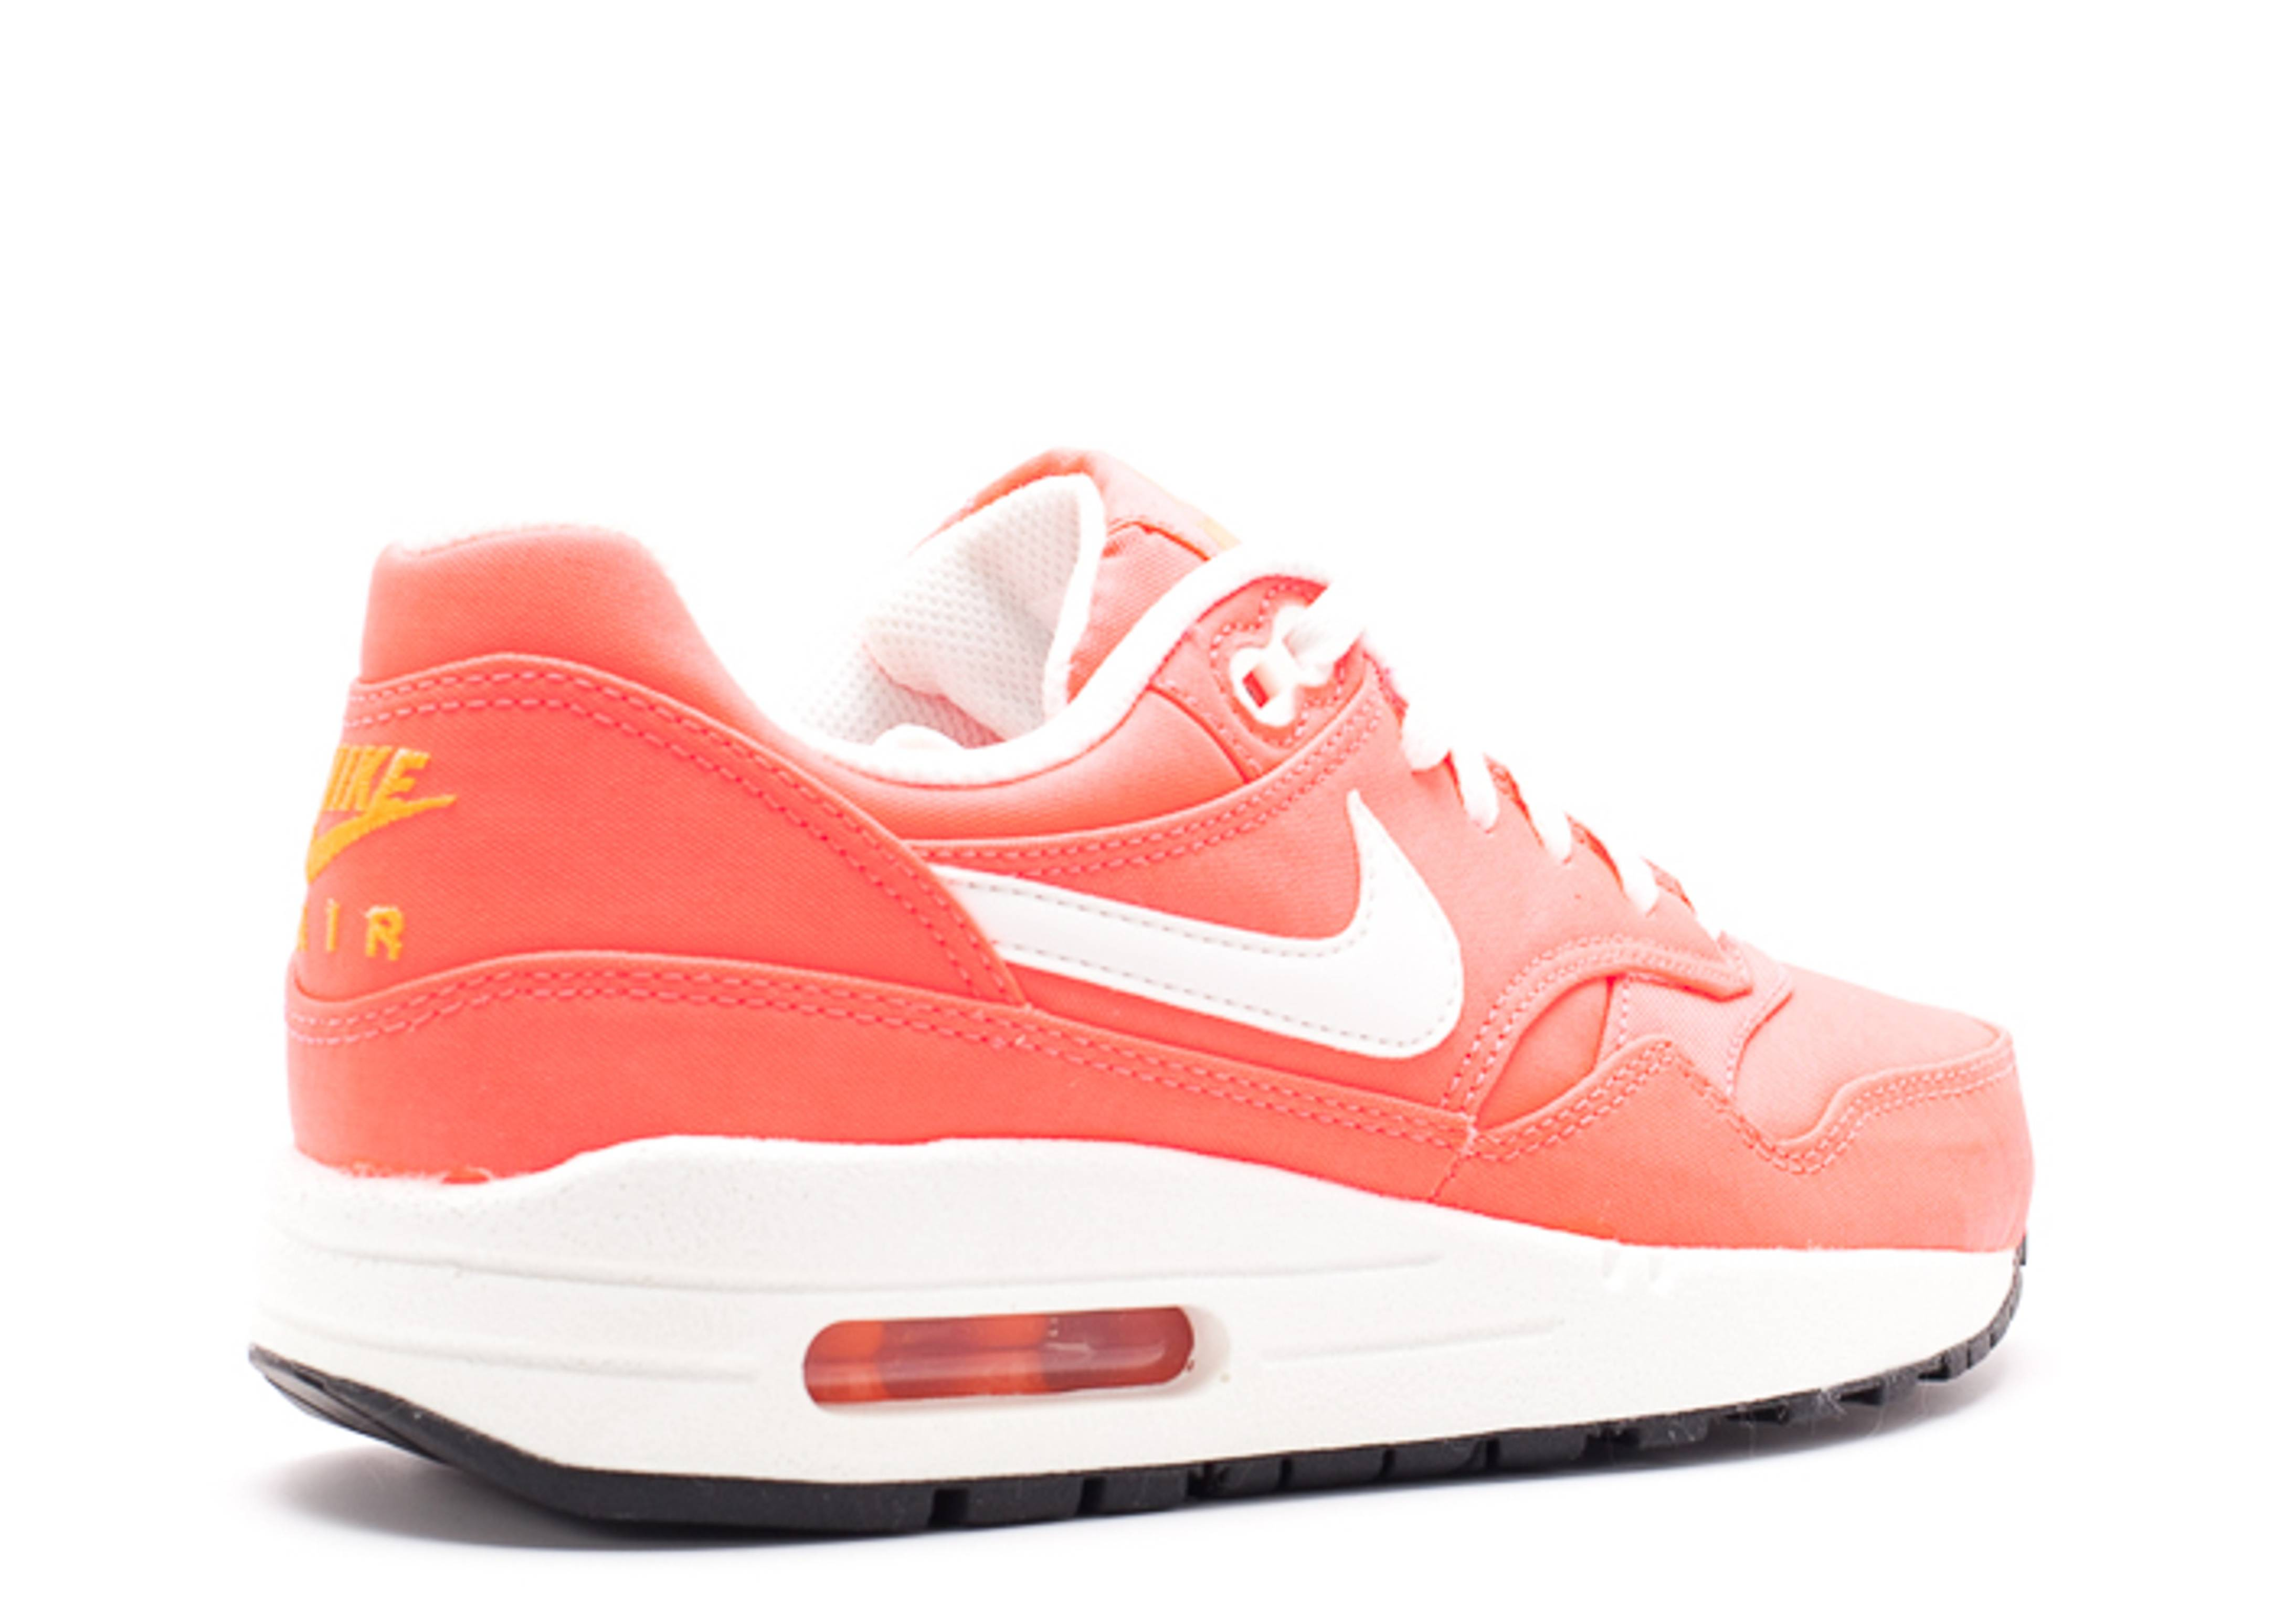 Air Max 1 Premium Qs Gs Nike 693596 600 hyper punch